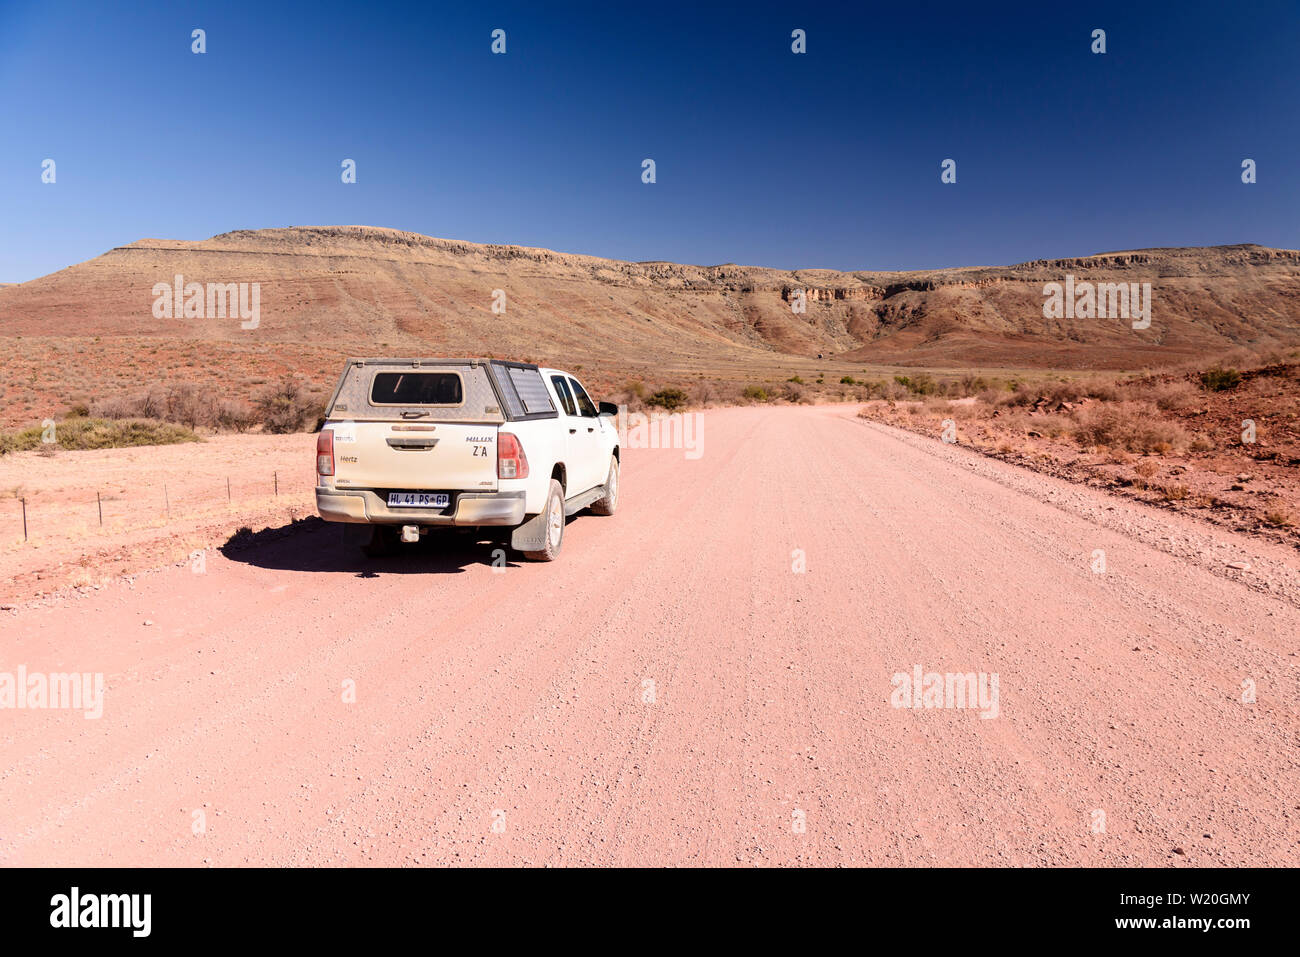 Toyota Hilux drives along a gravel dirt road leading towards mountains in Central Namibia Stock Photo